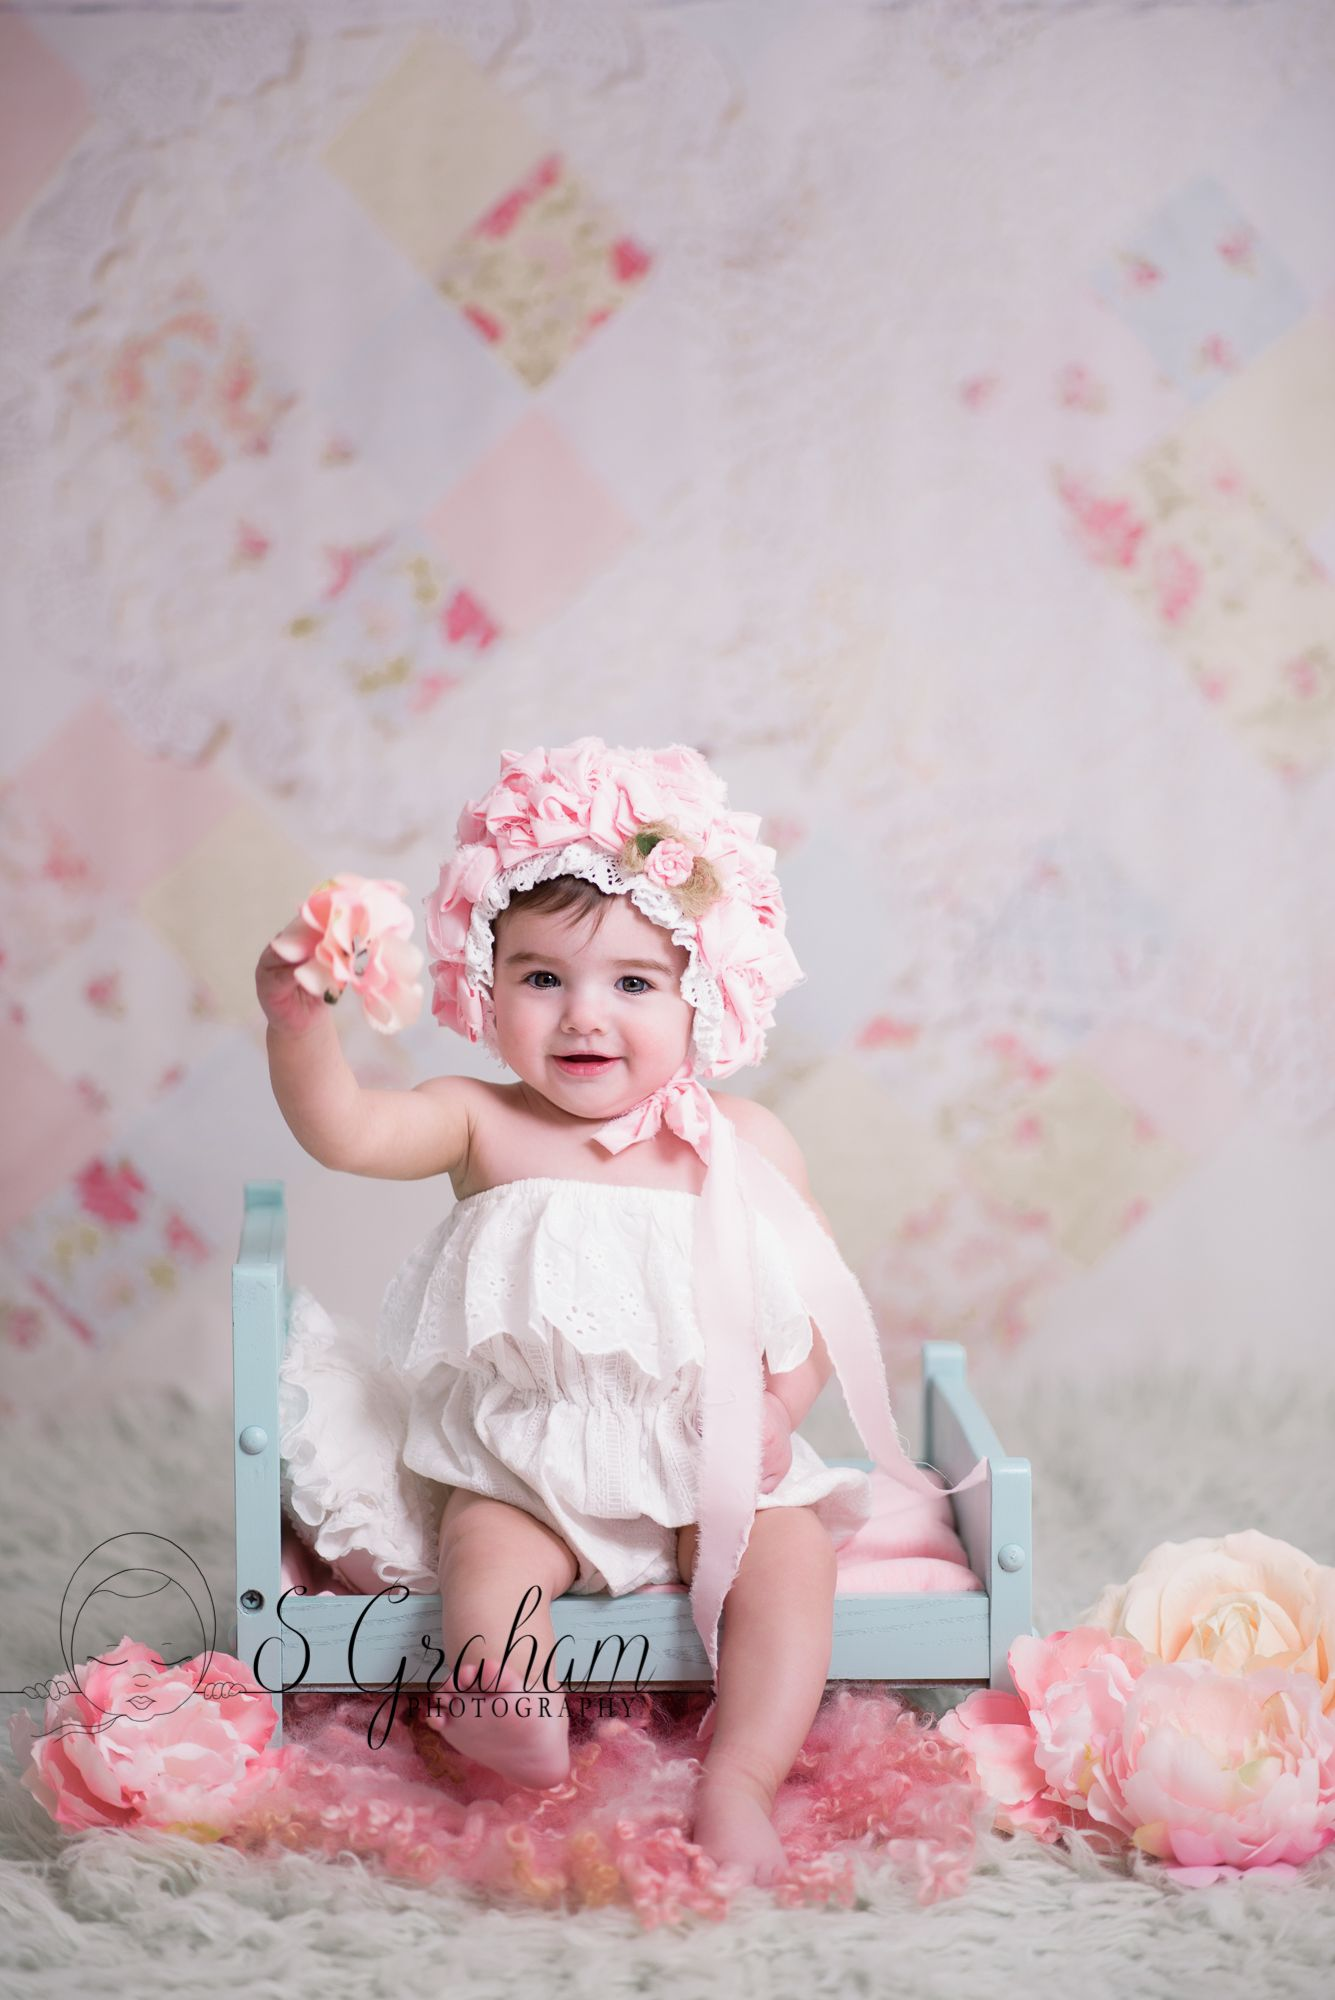 Baby girl portrait professional newborn photography baby photographer central ma worcester ma leominster ma